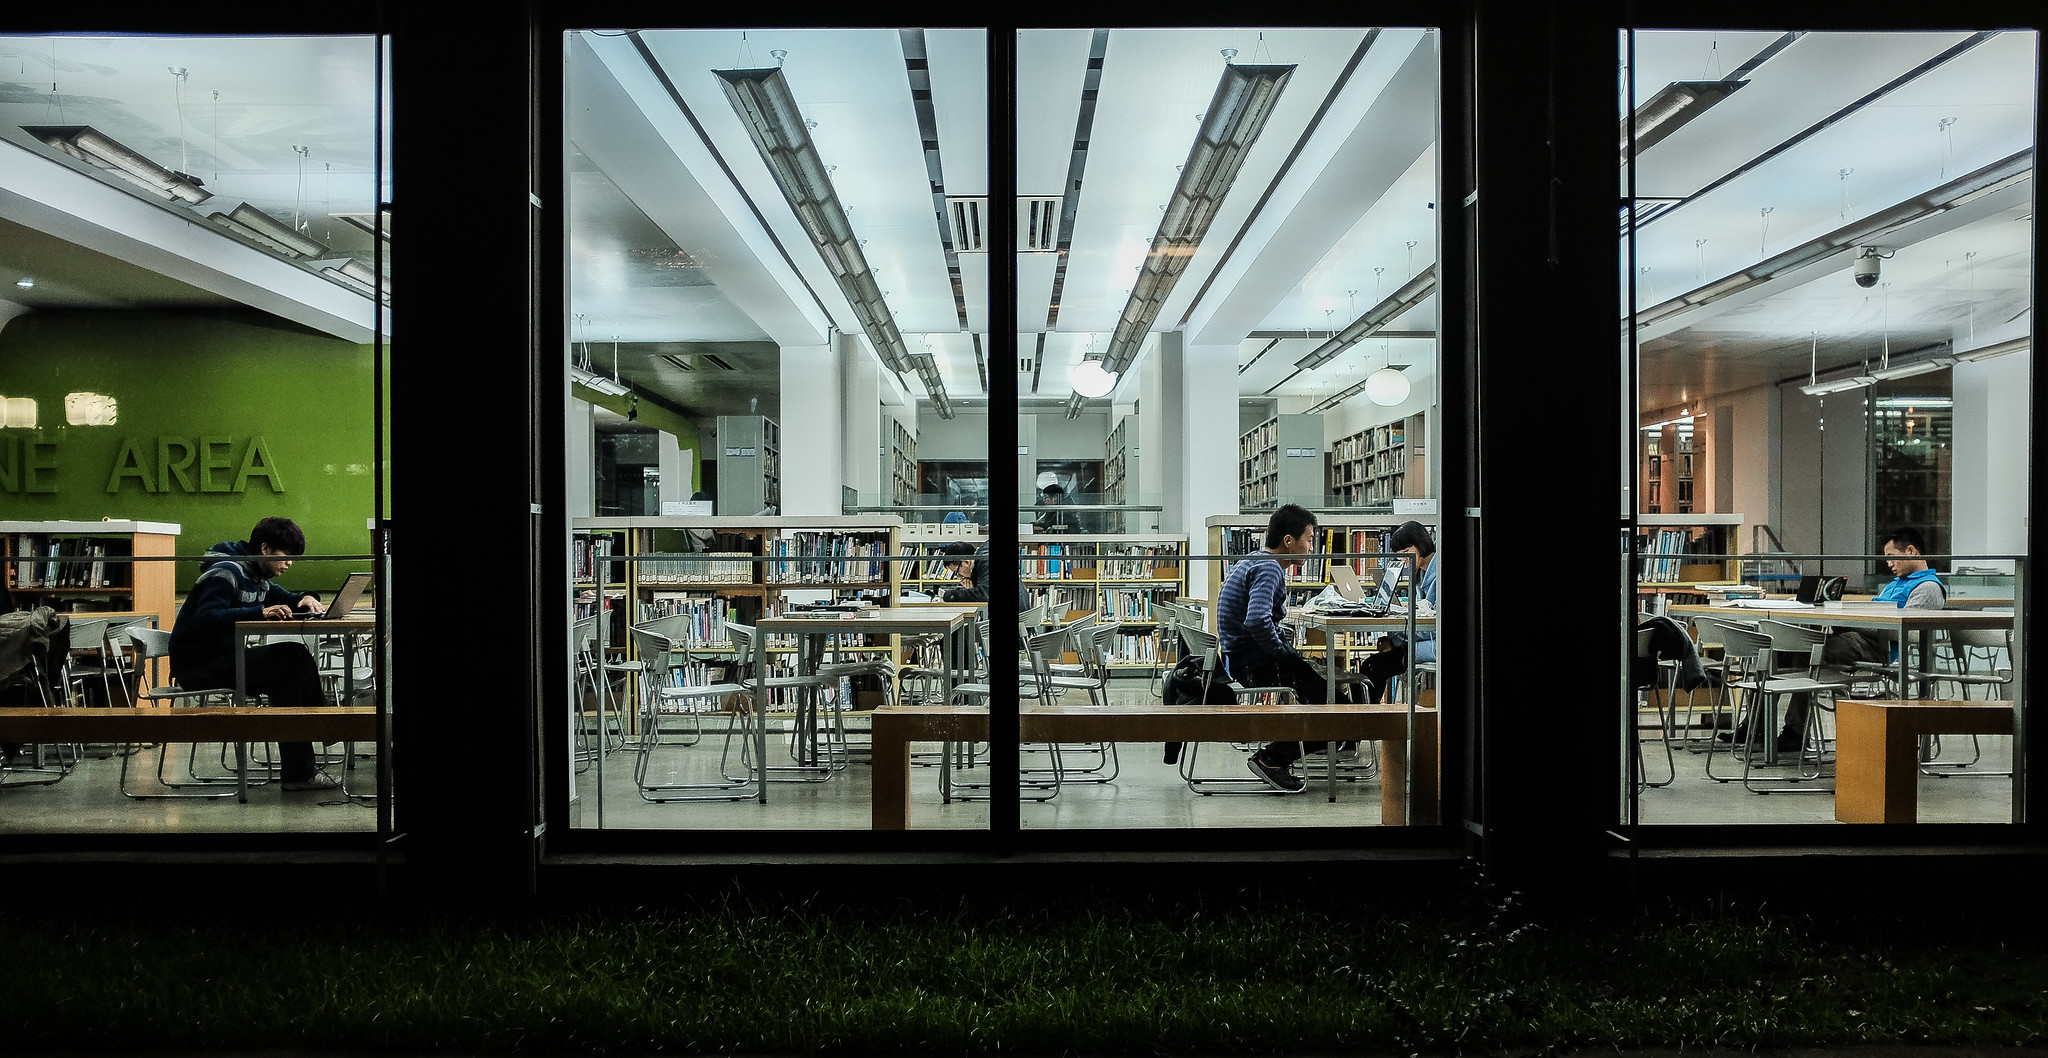 Students studying at large tables in a library late at night